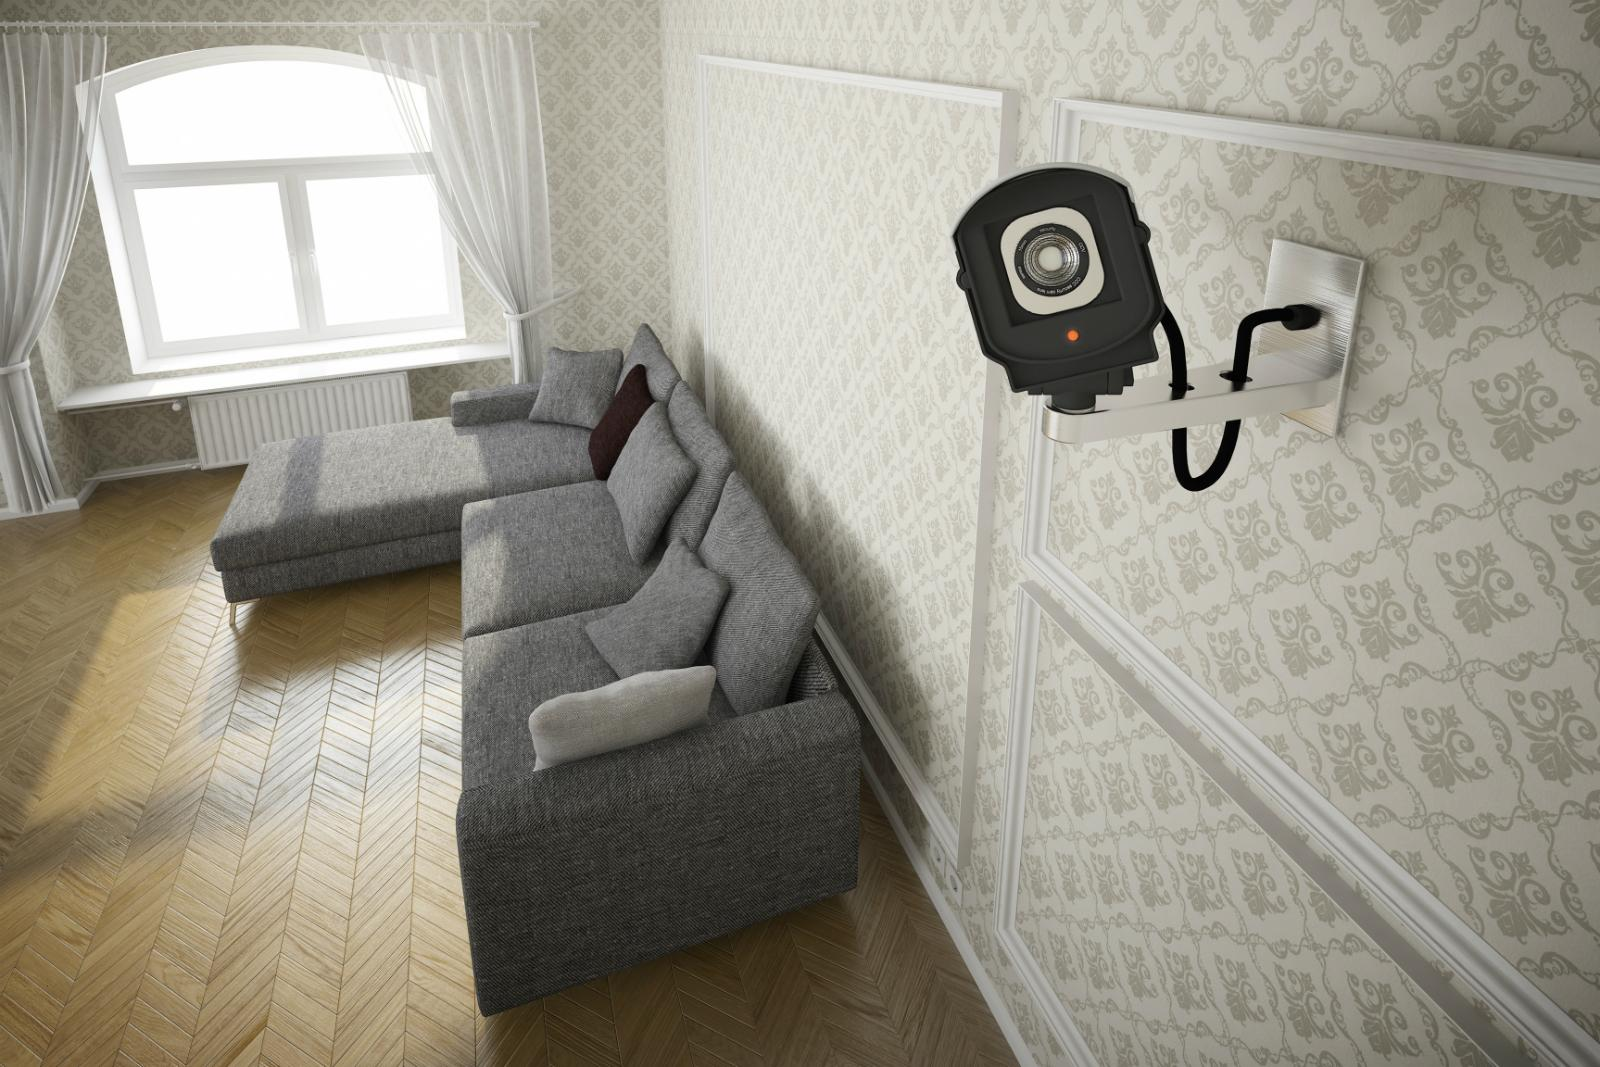 Change default passwords to keep home security cameras for House alarm with camera